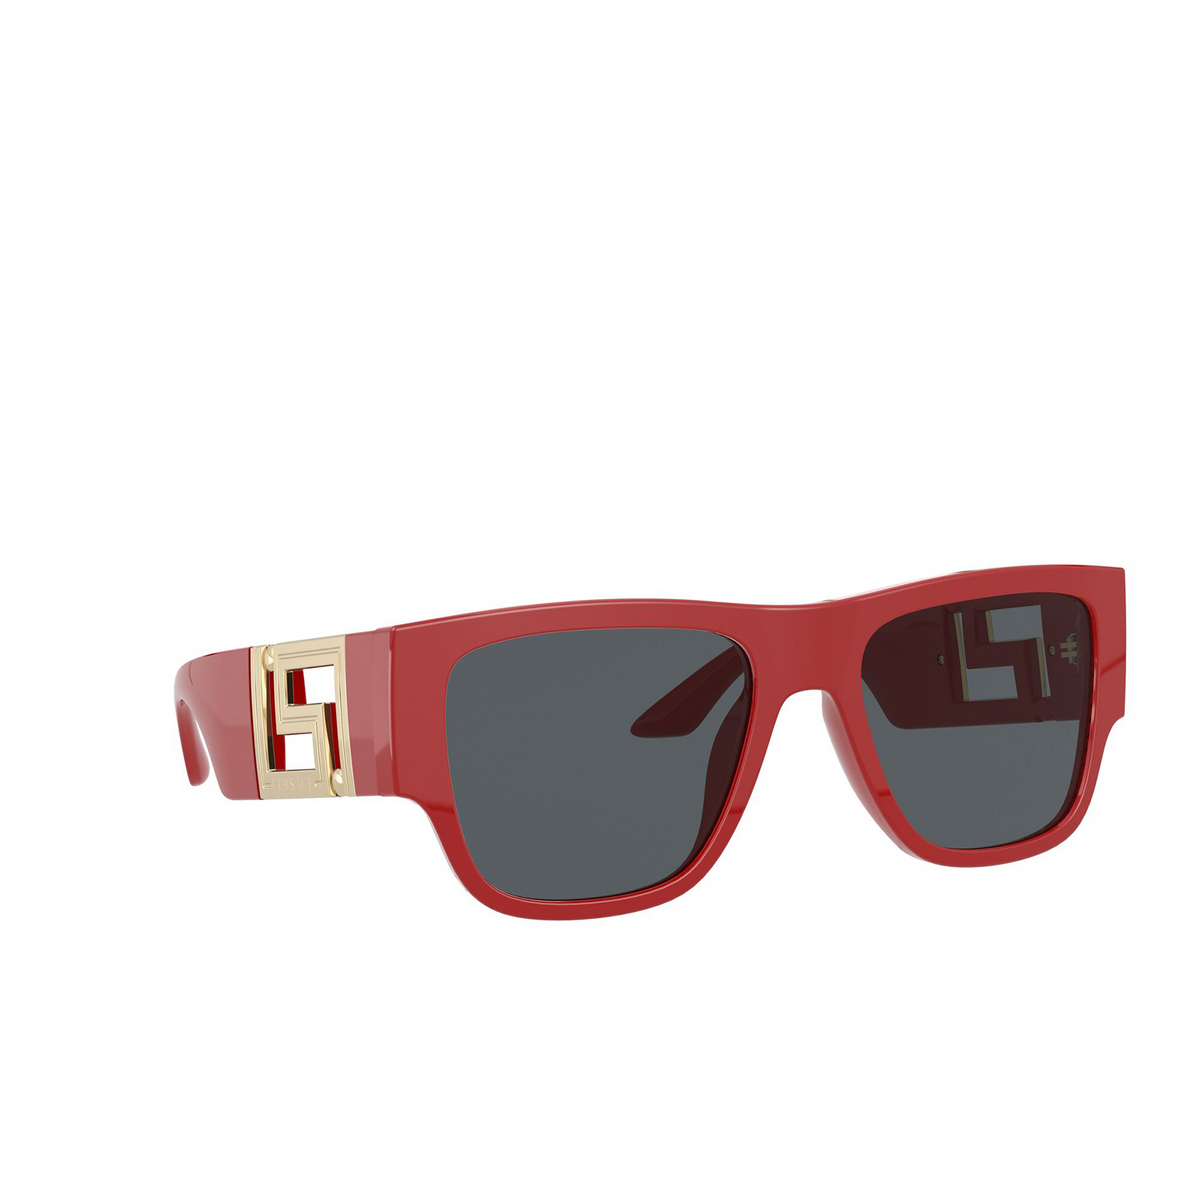 Versace® Square Sunglasses: VE4403 color Red 534487 - three-quarters view.